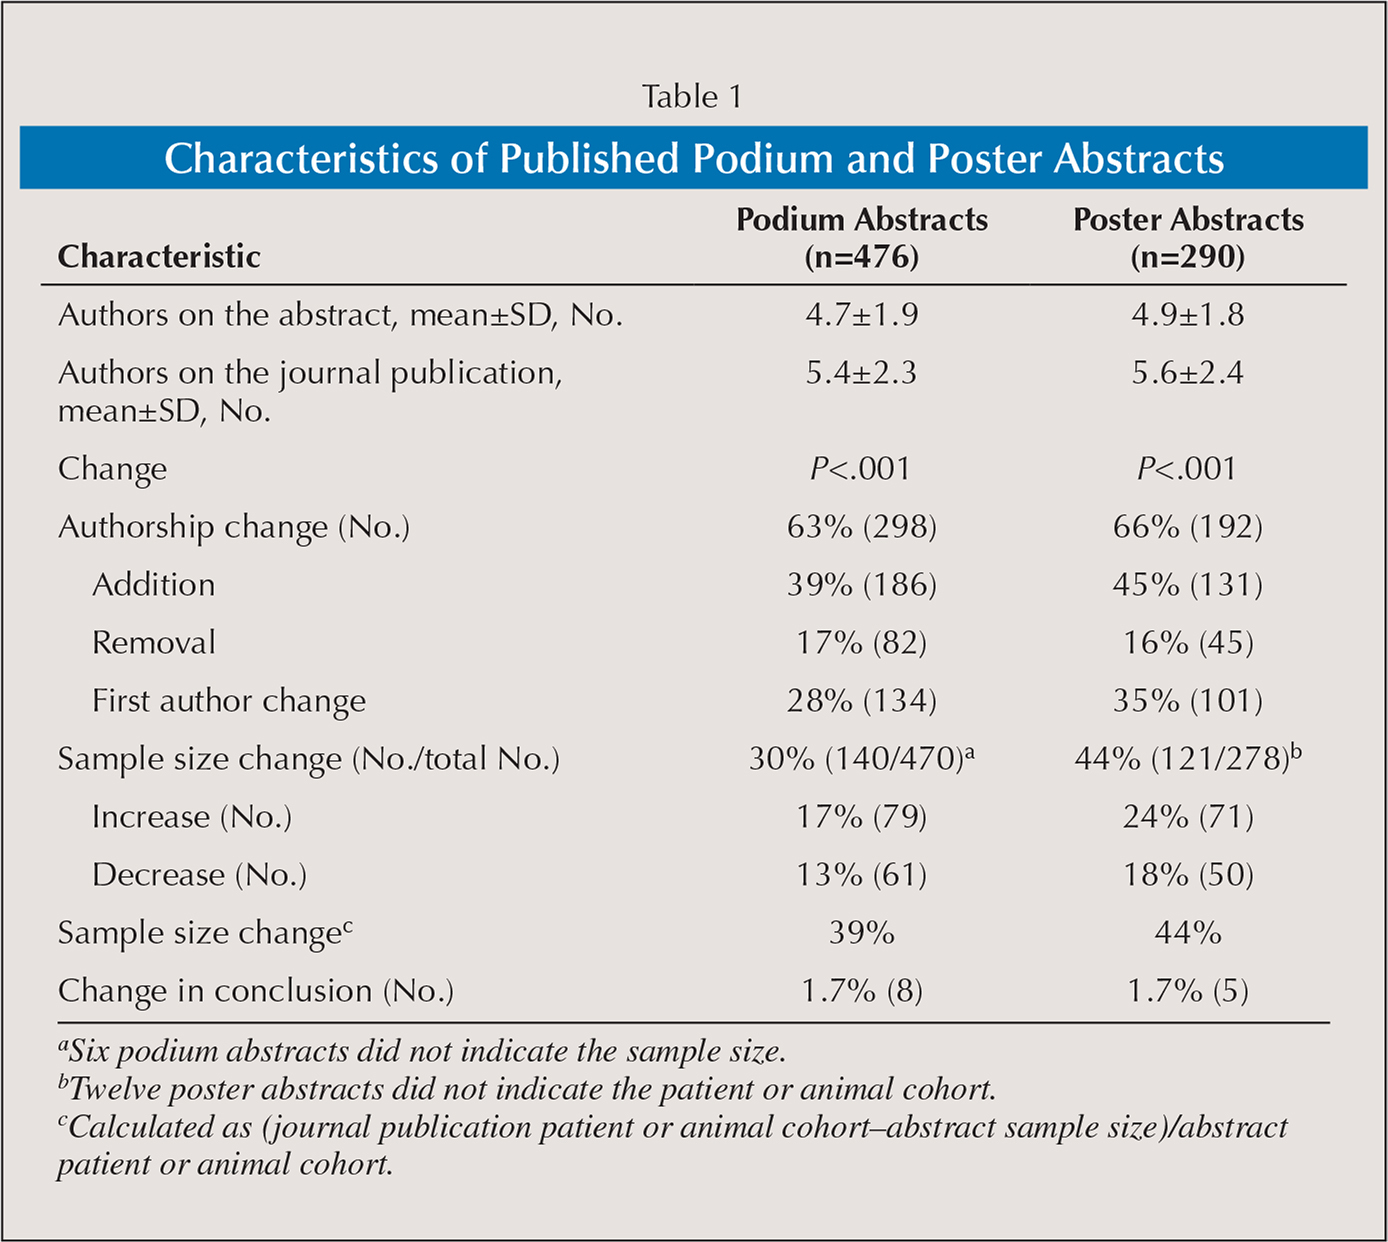 Characteristics of Published Podium and Poster Abstracts